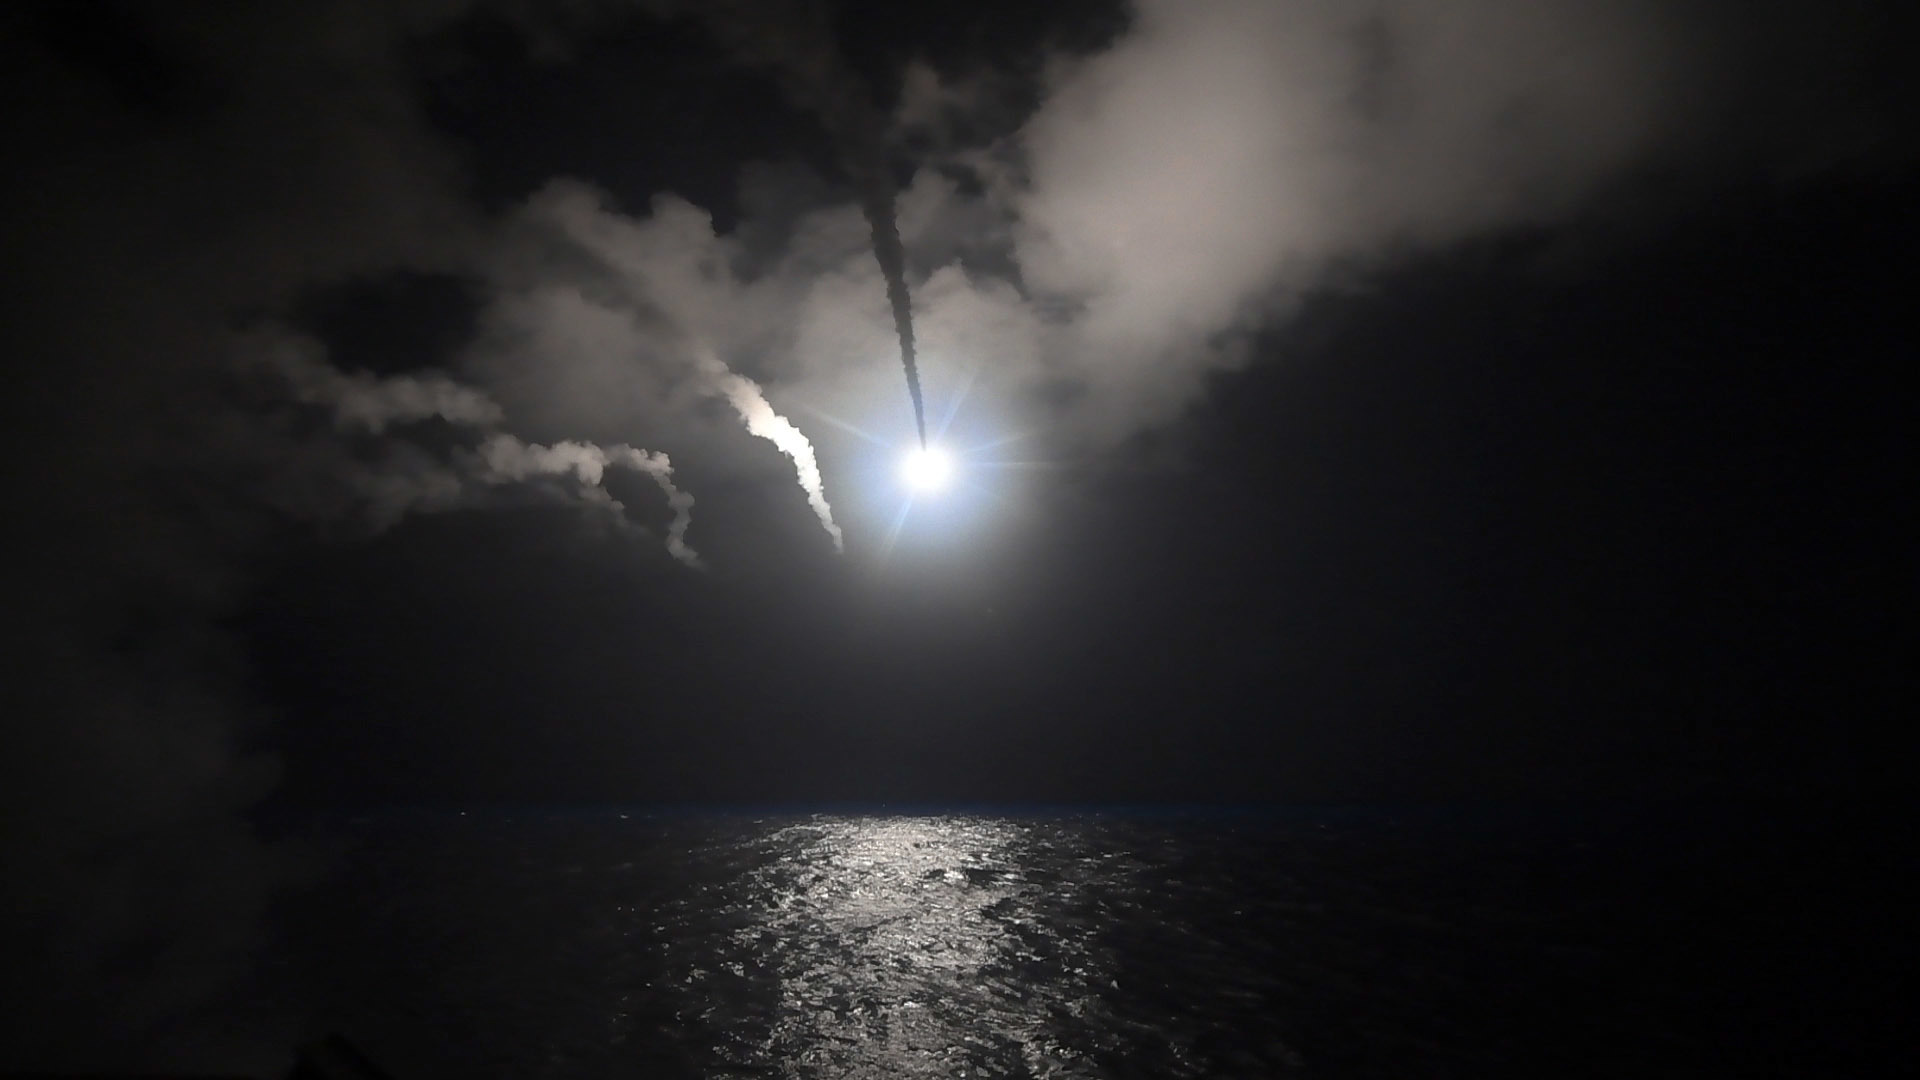 In this image provided by the U.S. Navy, the guided-missile destroyer USS Porter (DDG 78) launches a tomahawk land attack missile in the Mediterranean Sea, April 7, 2017.